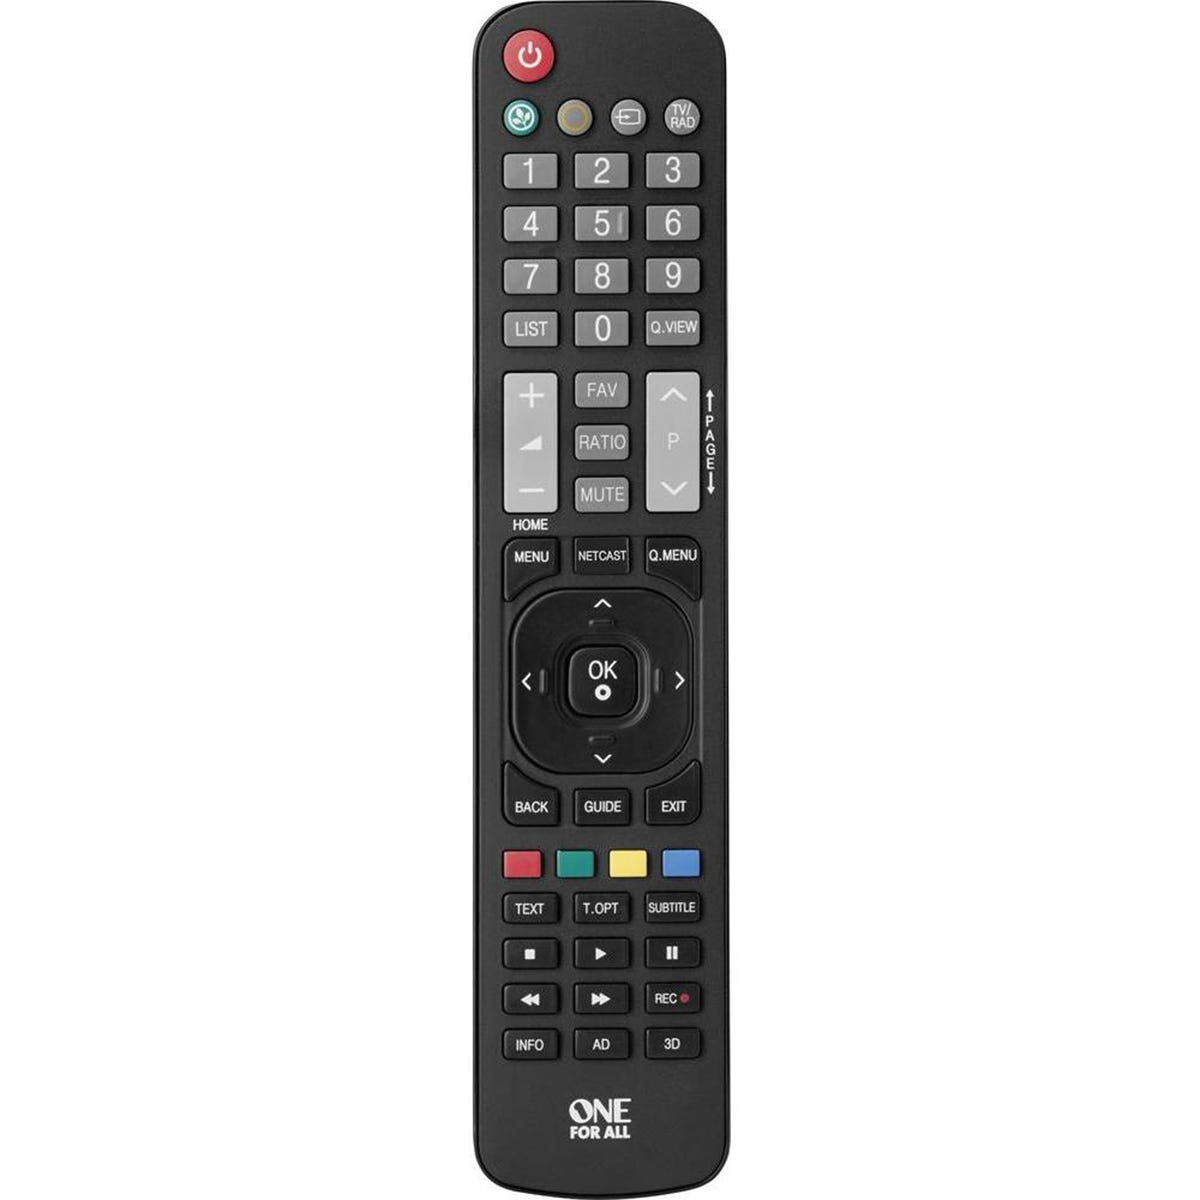 One For All Replacement LG TV Remote Control